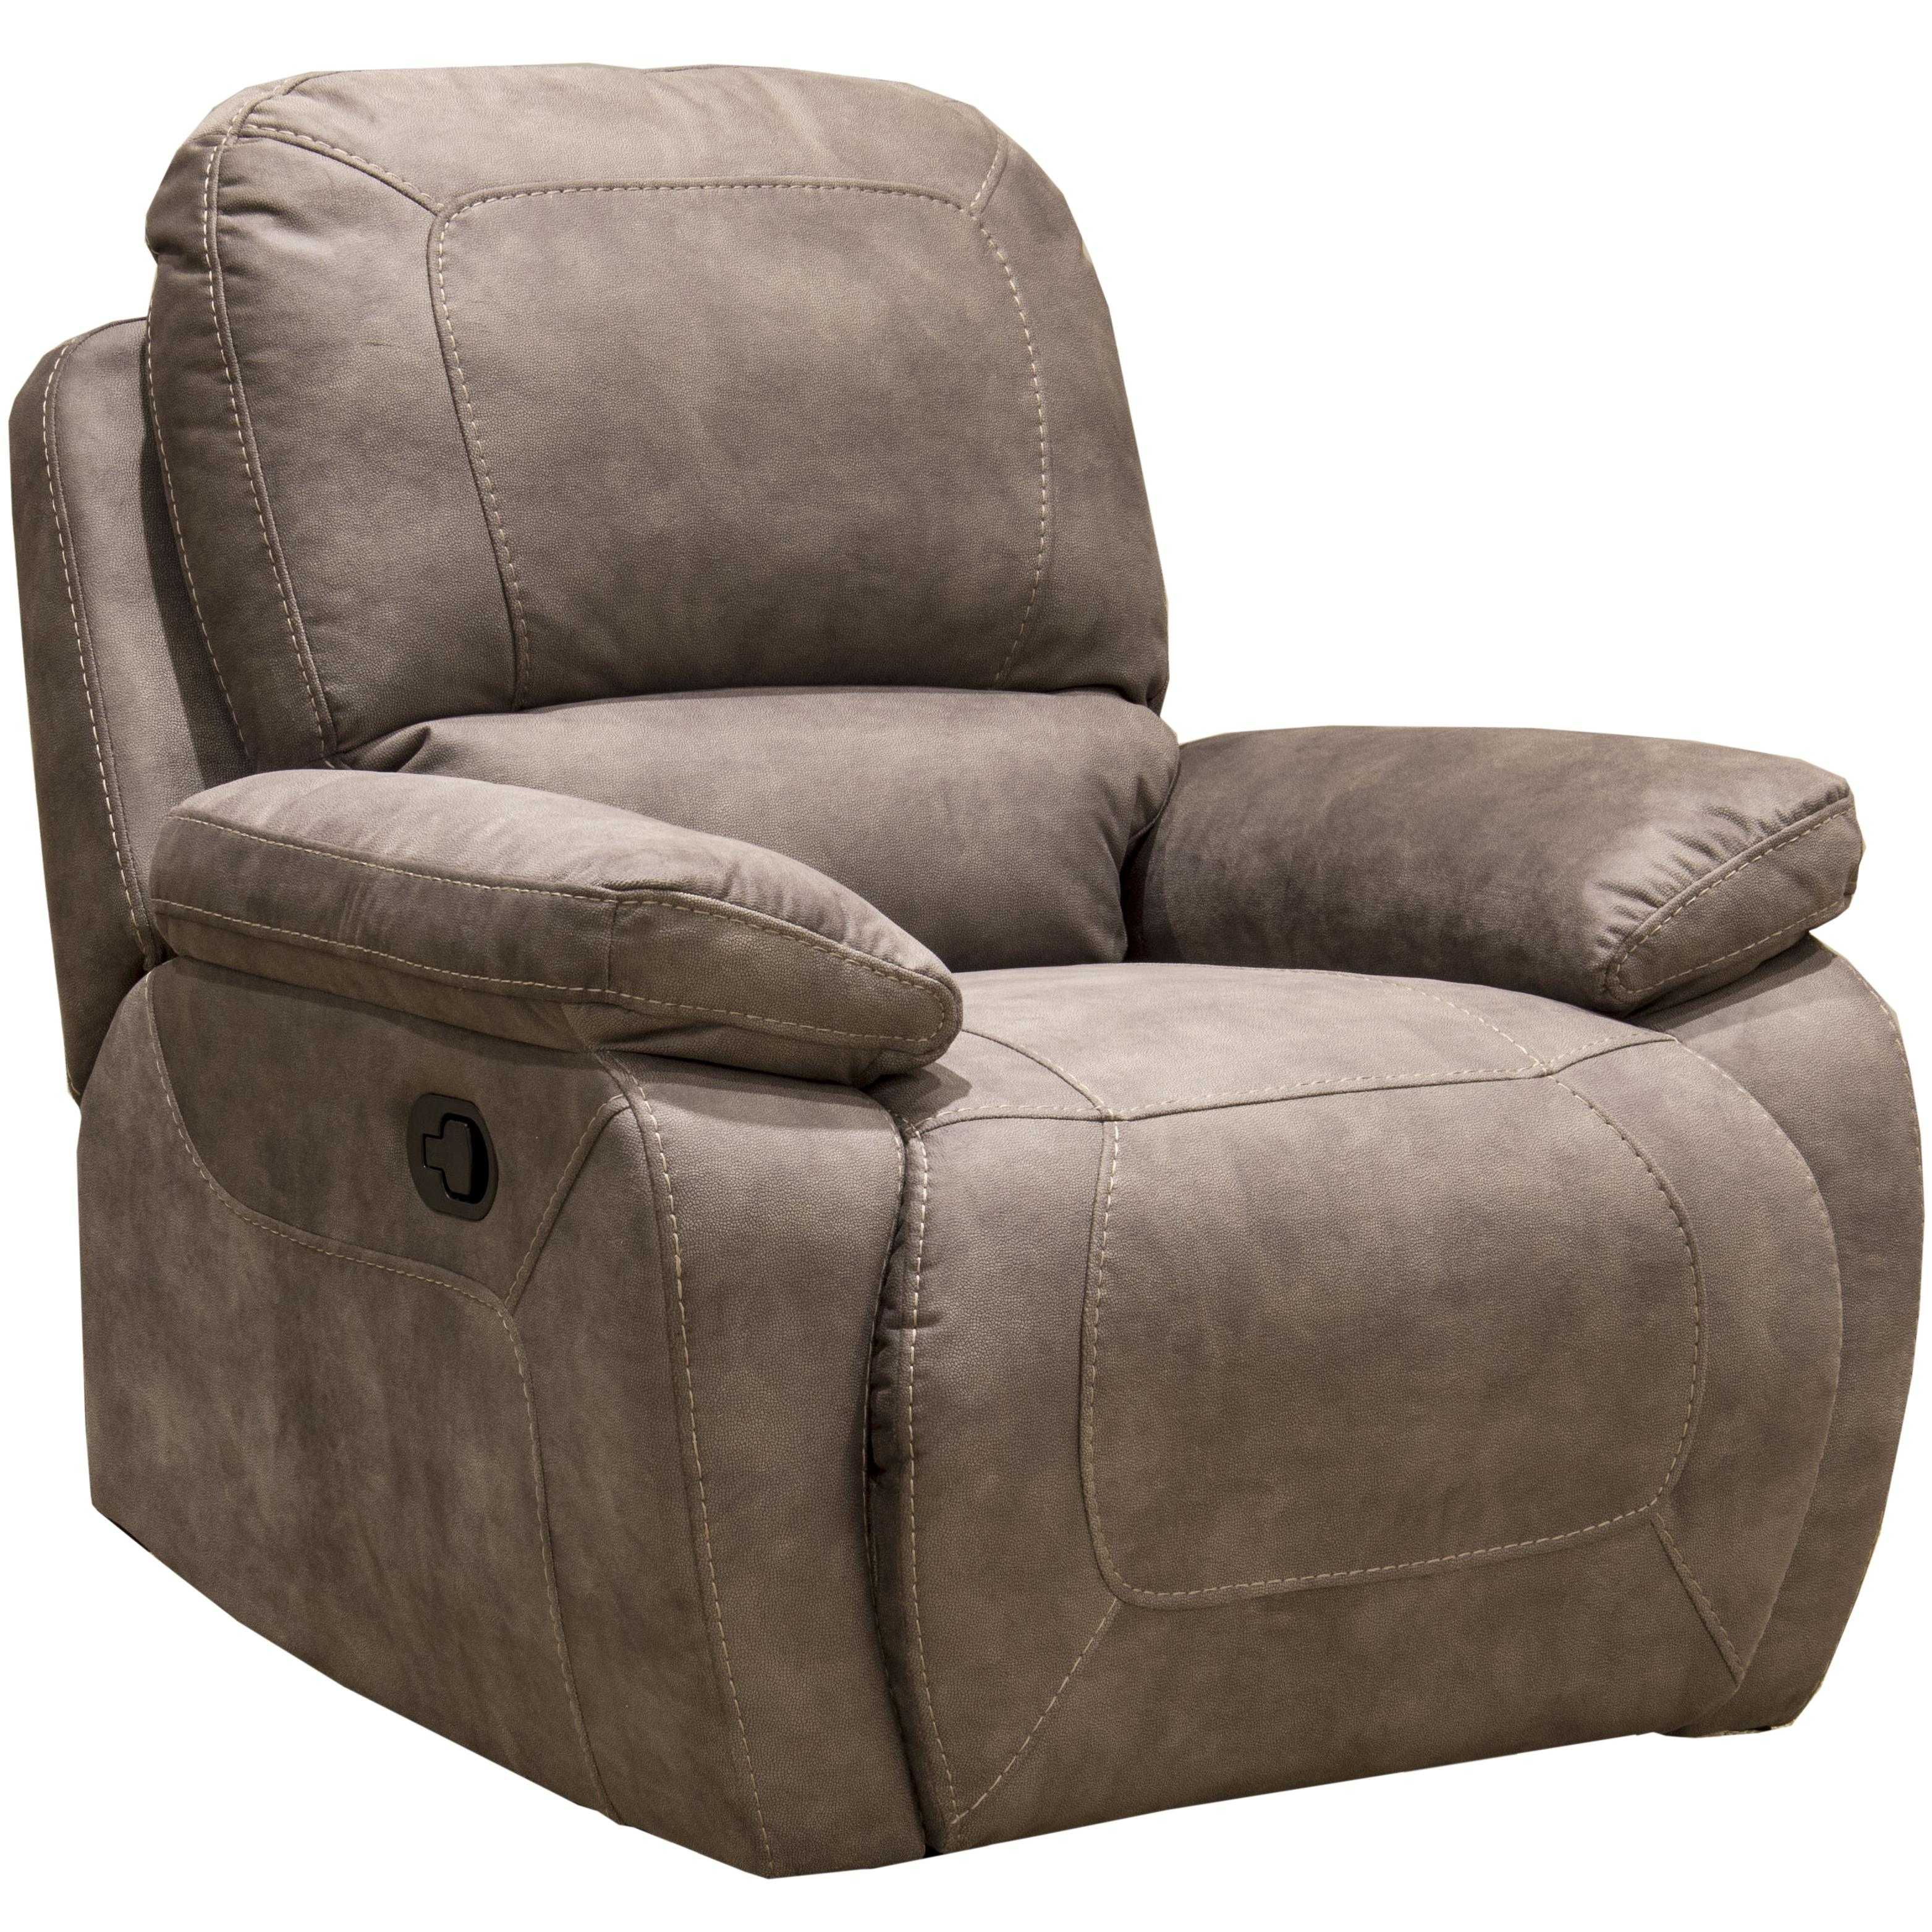 Synergy Home Furnishings 1060 Collection Casual Lay Flat Power Recliner - Item Number: 1060-85PWRP-Sultry Pecan